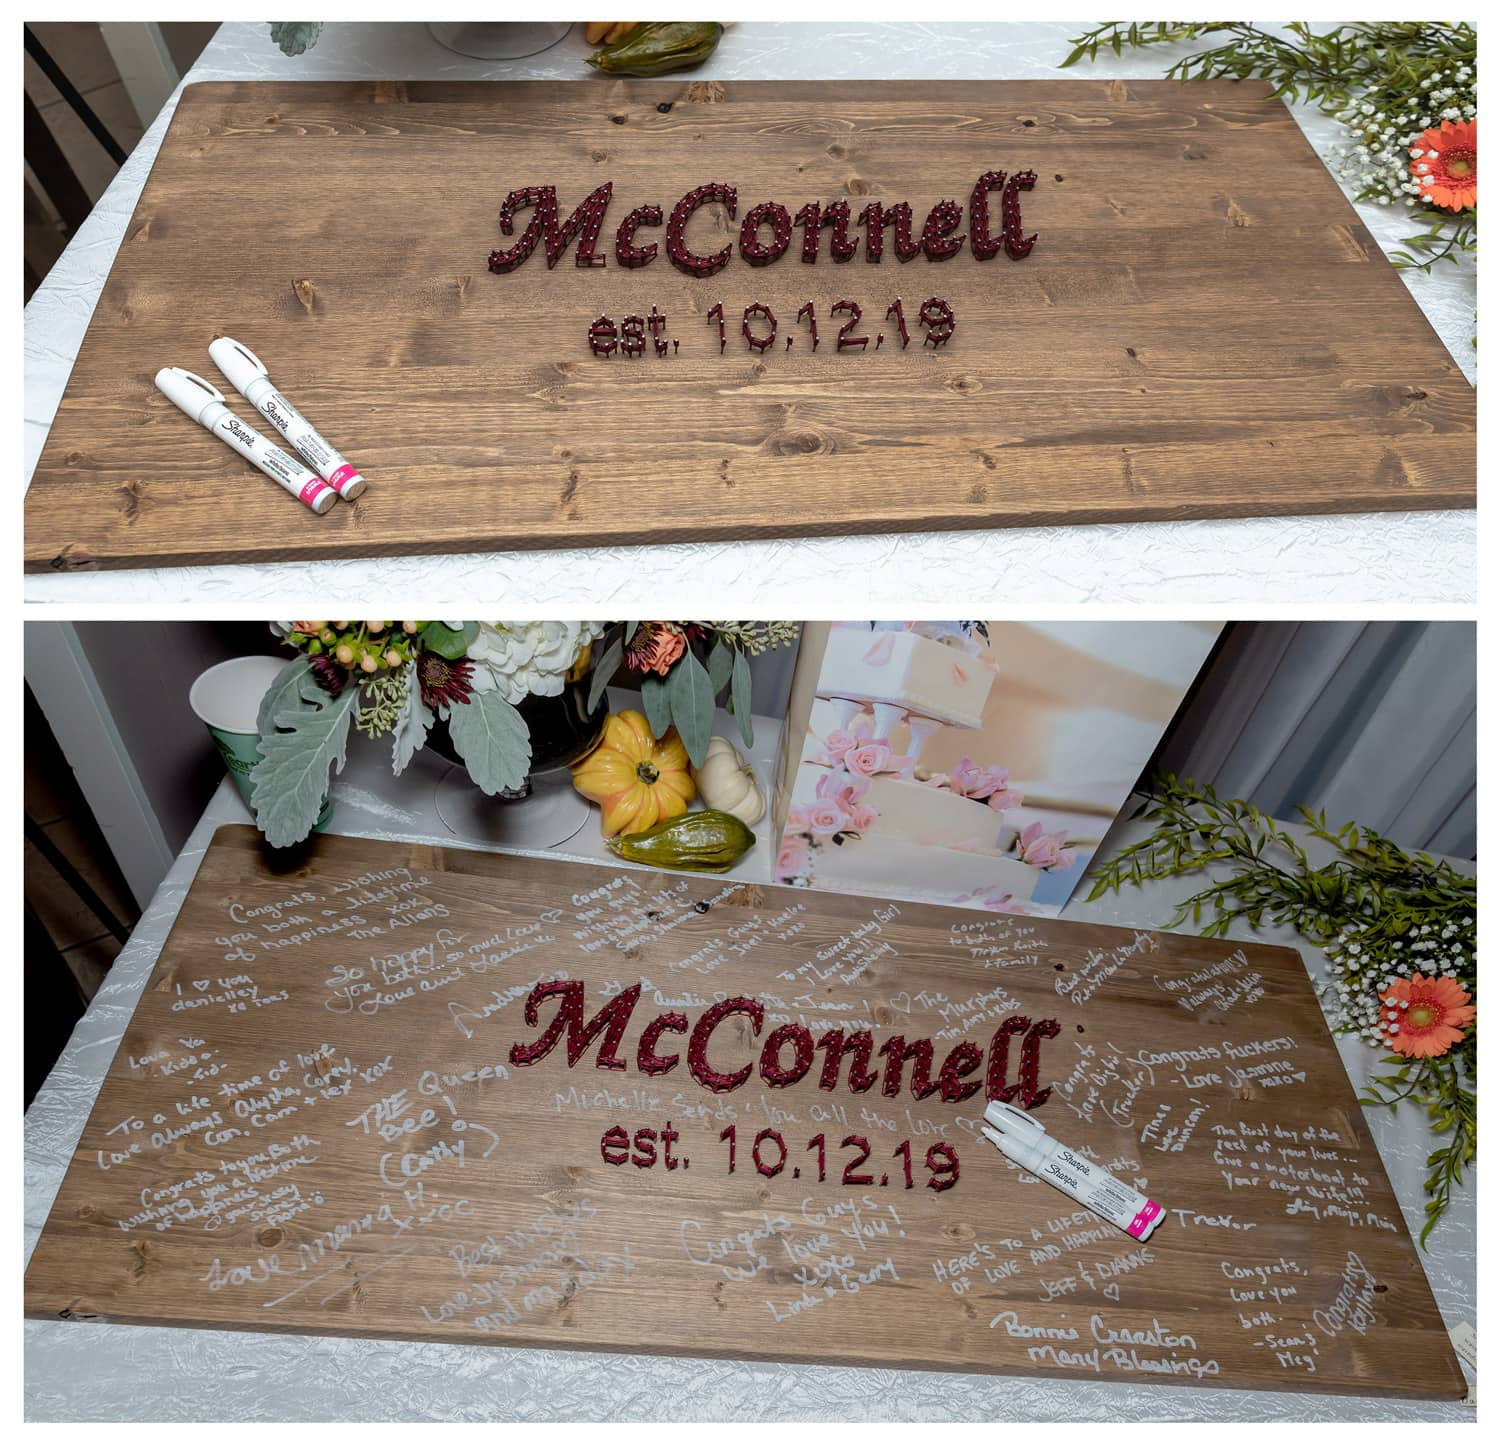 a wooden wedding guest book sign for guests to sign with raised surname lettering displayed at a wedding at the Digby Pines Resort